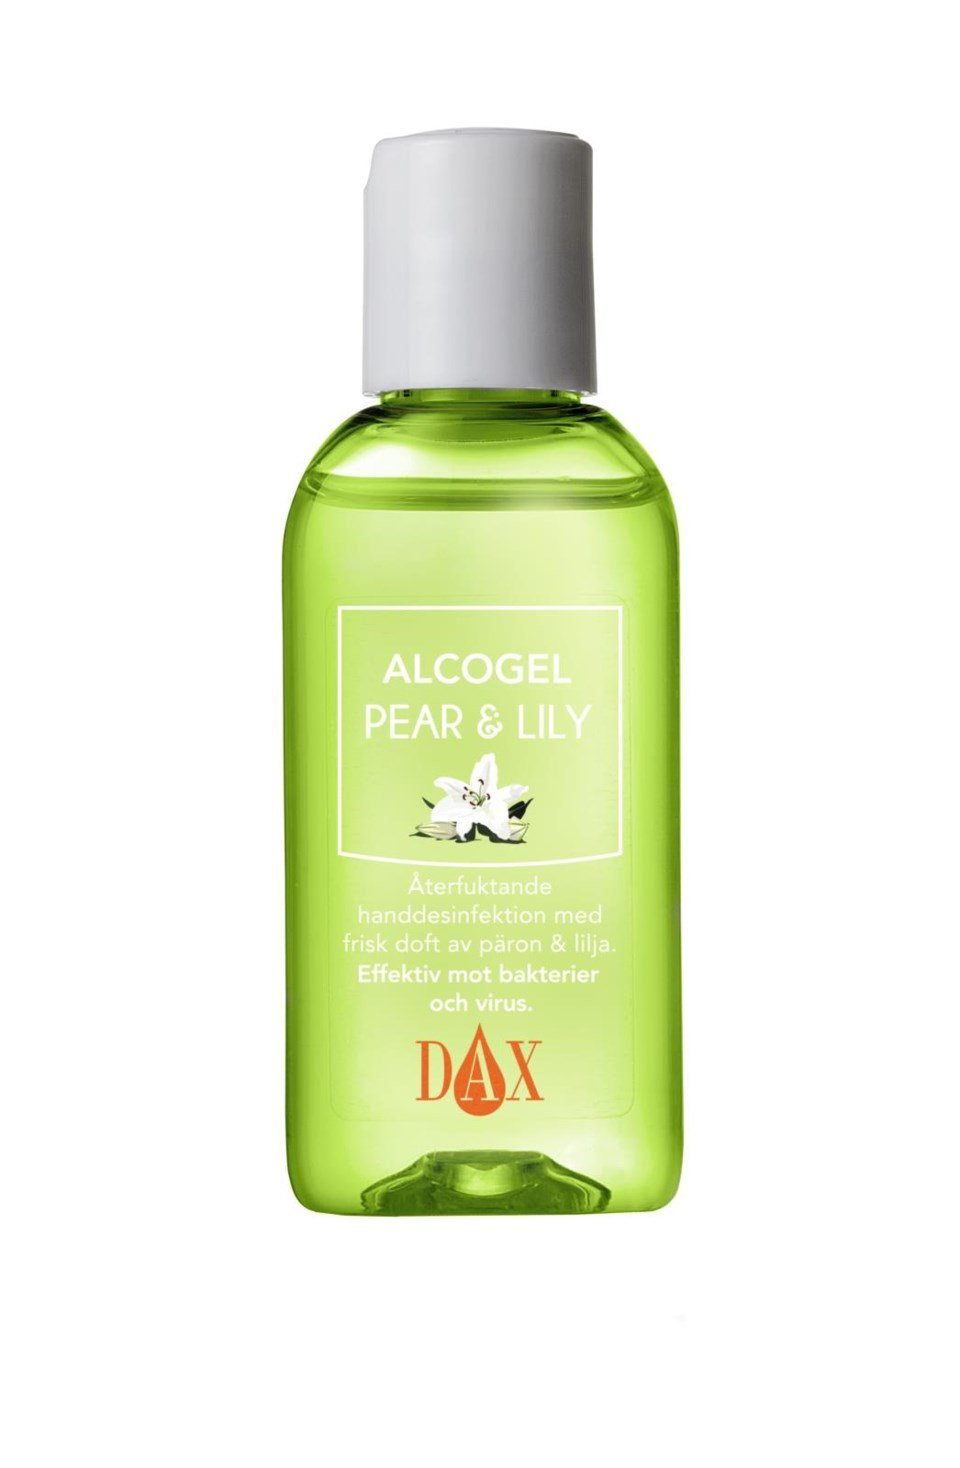 Handdesinfektion DAX Alcogel Pear & Lily 50 ml 51010109_1